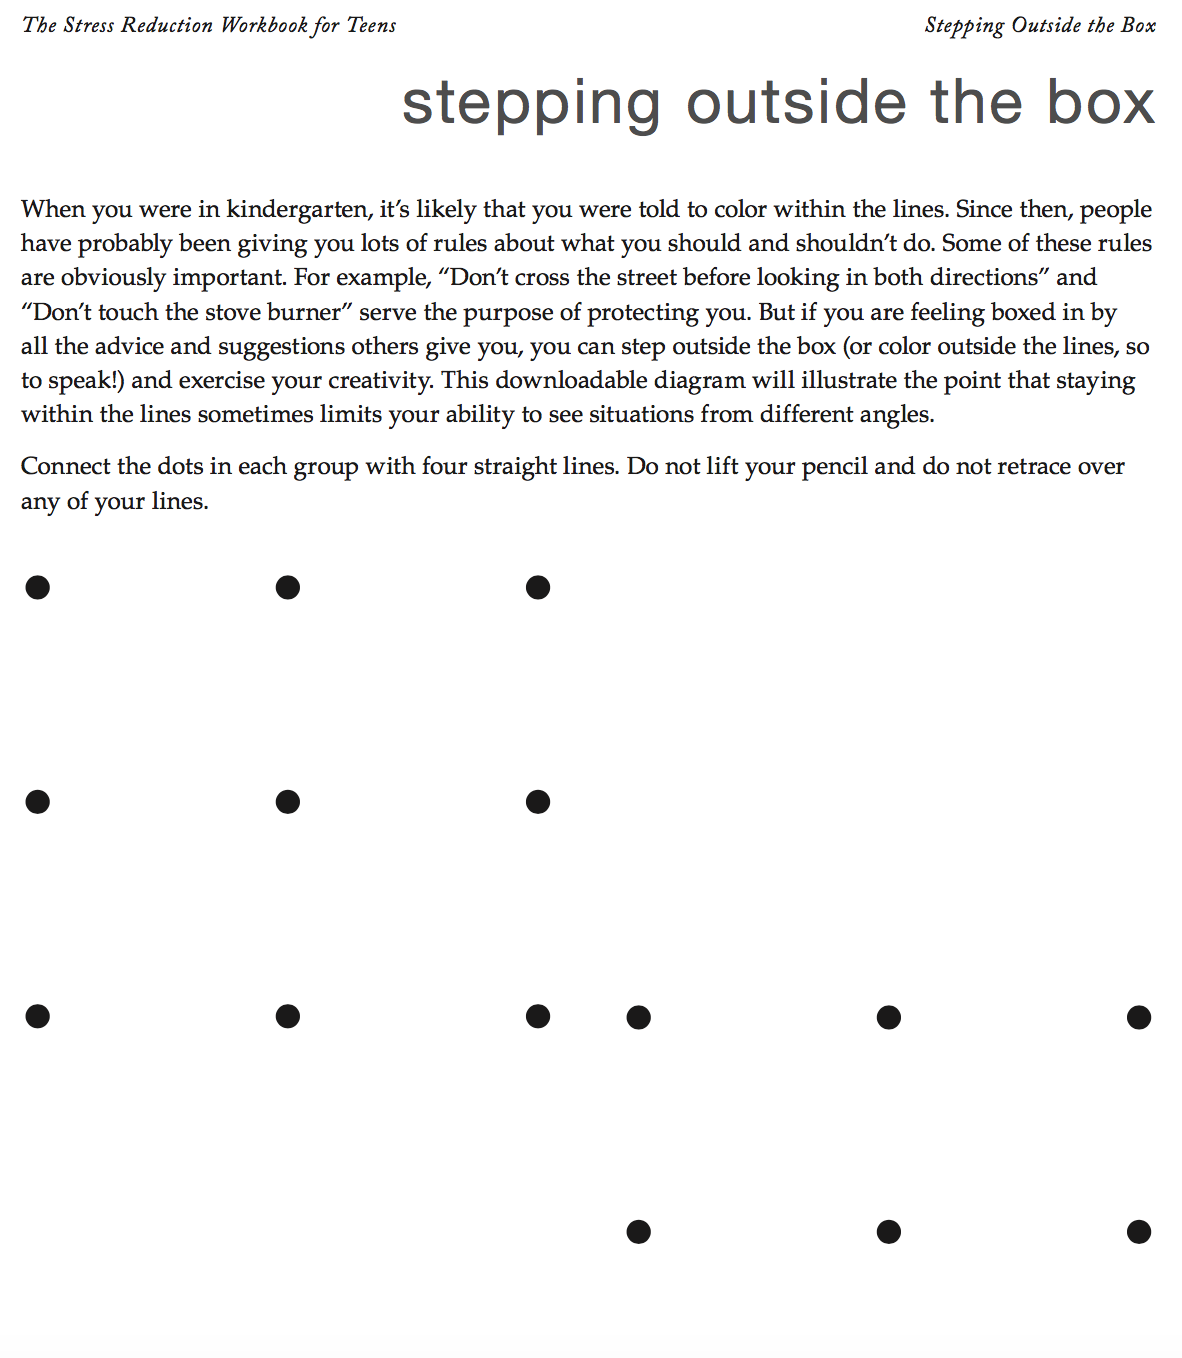 Stepping Outside the BoxScreen Shot 2018-04-10 at 4.16.14 PM.png